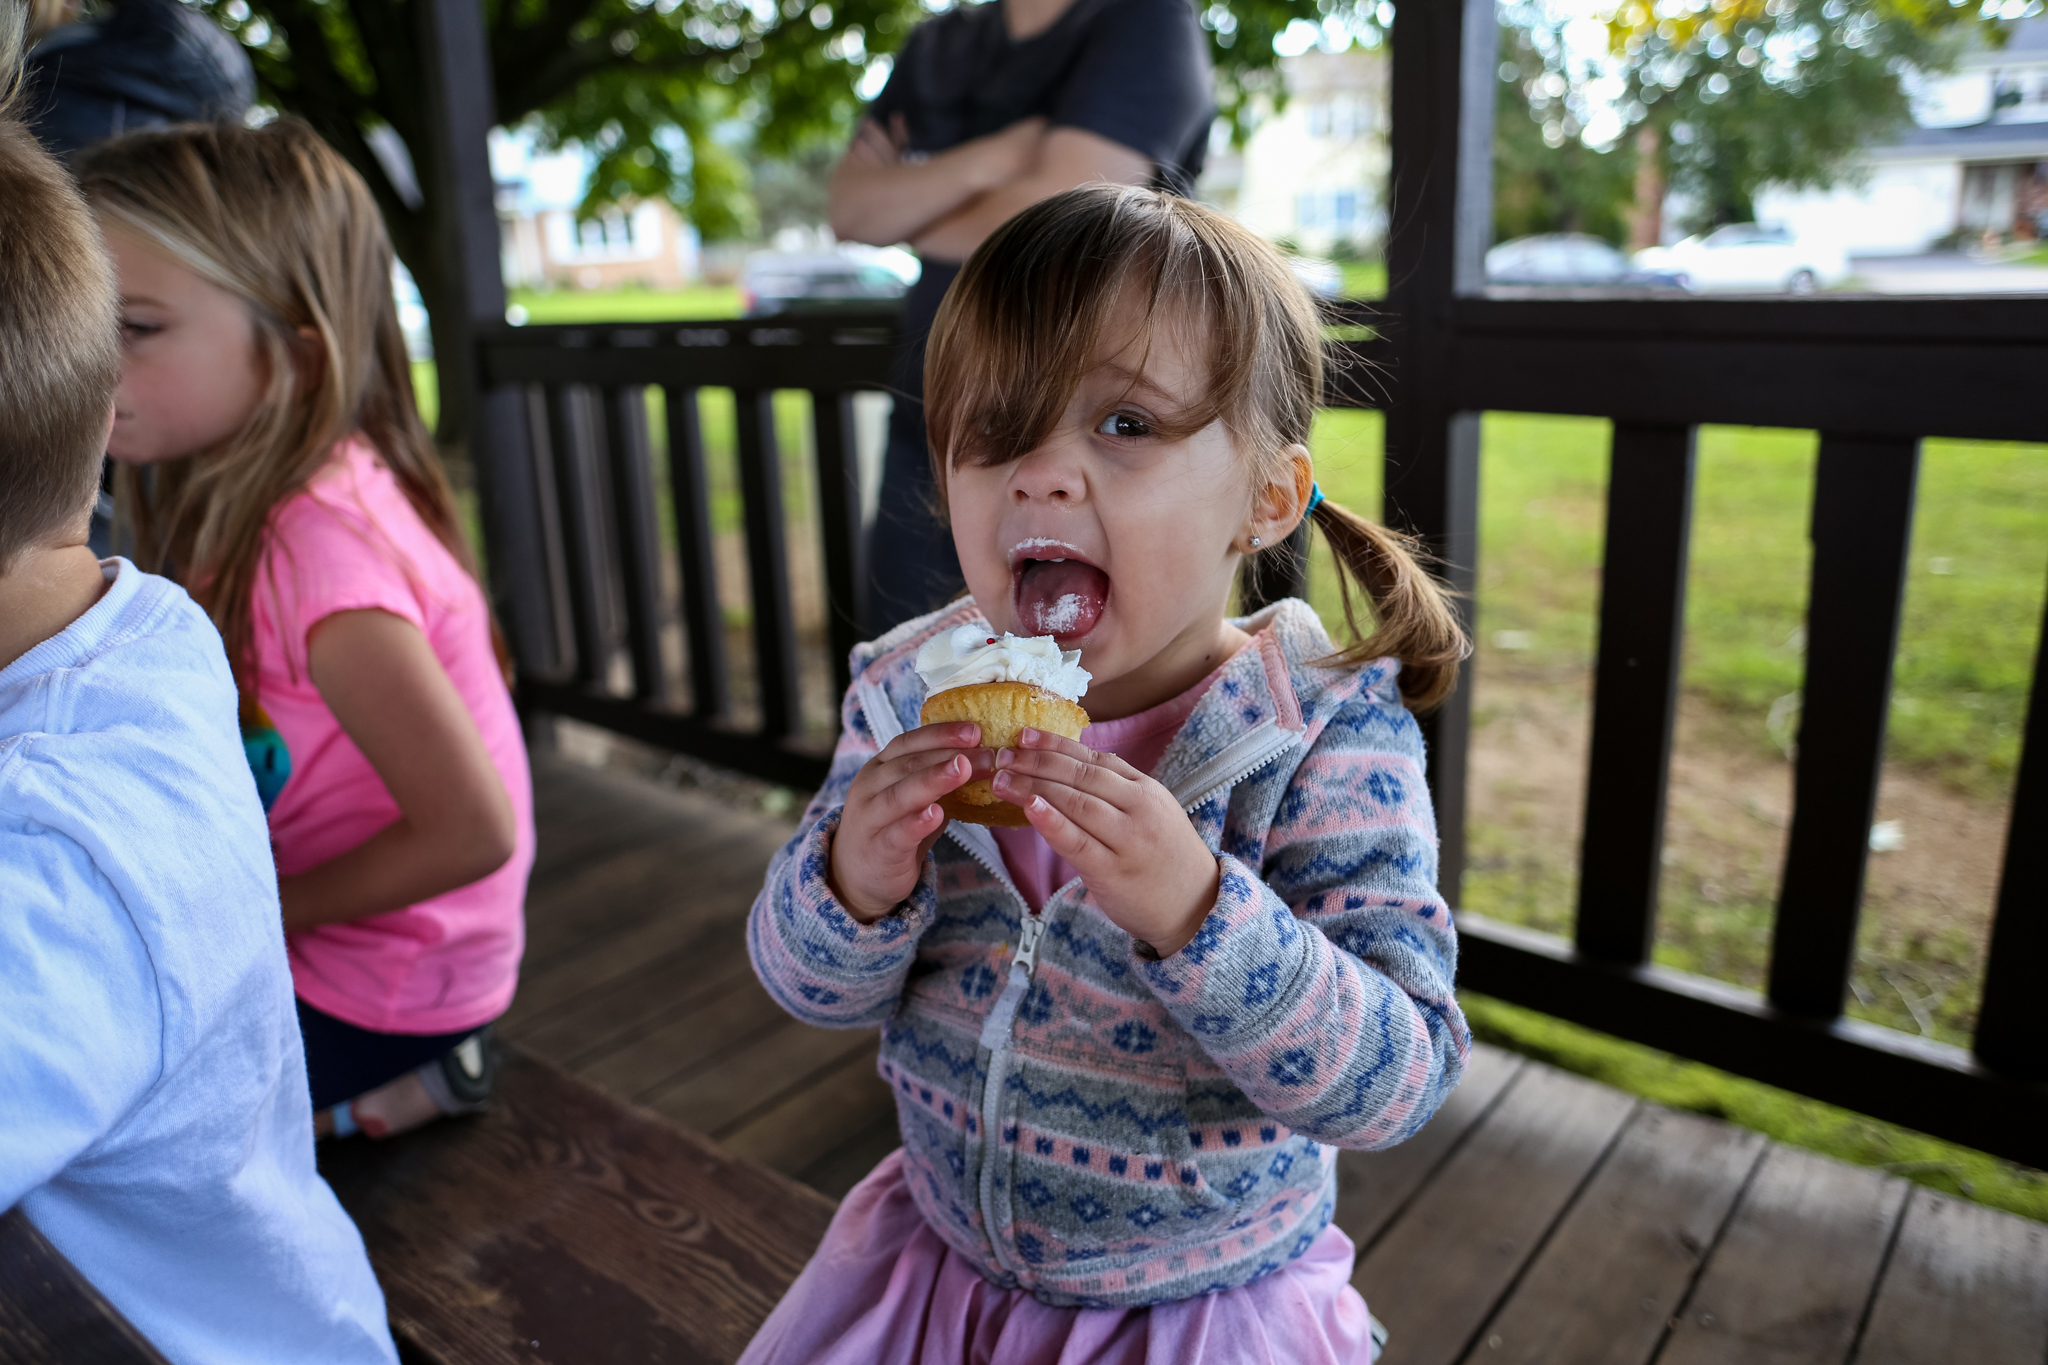 Little girl enjoying a cupcake at an outdoor birthday party in Macungie, PA.